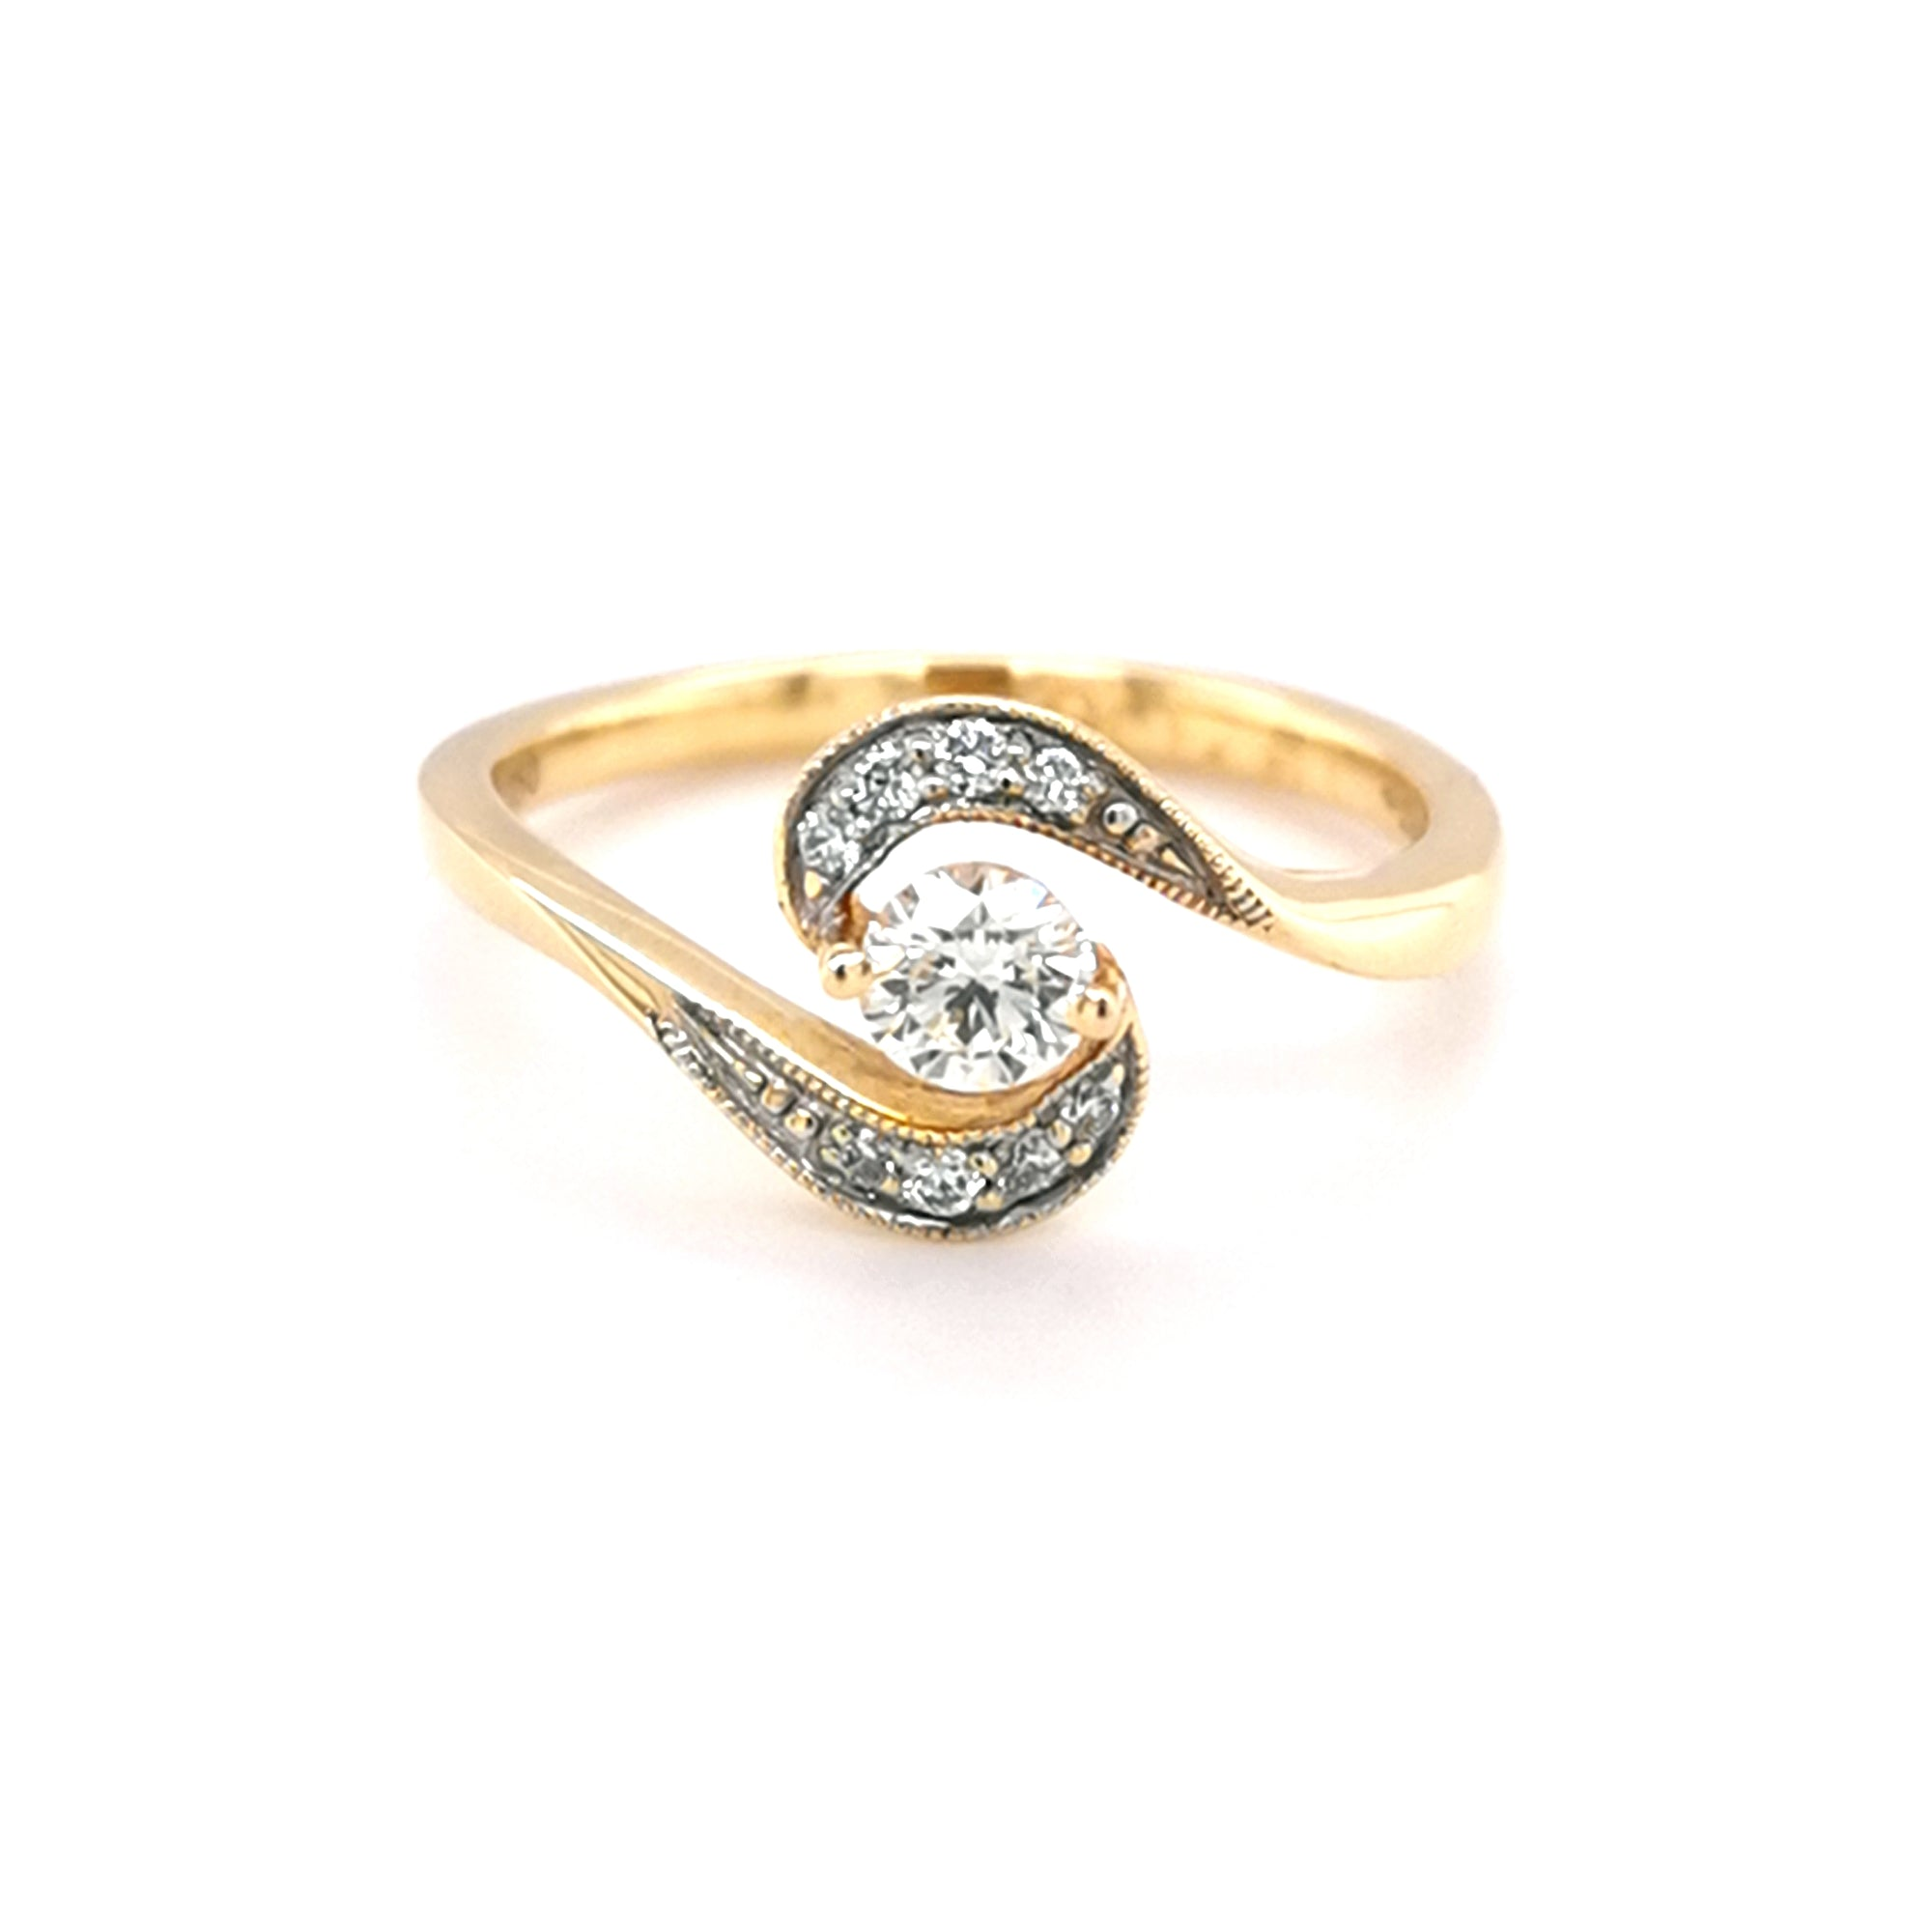 18ct Yellow Gold 0.25ct Diamond Dress Ring - Sonny's Jewellers